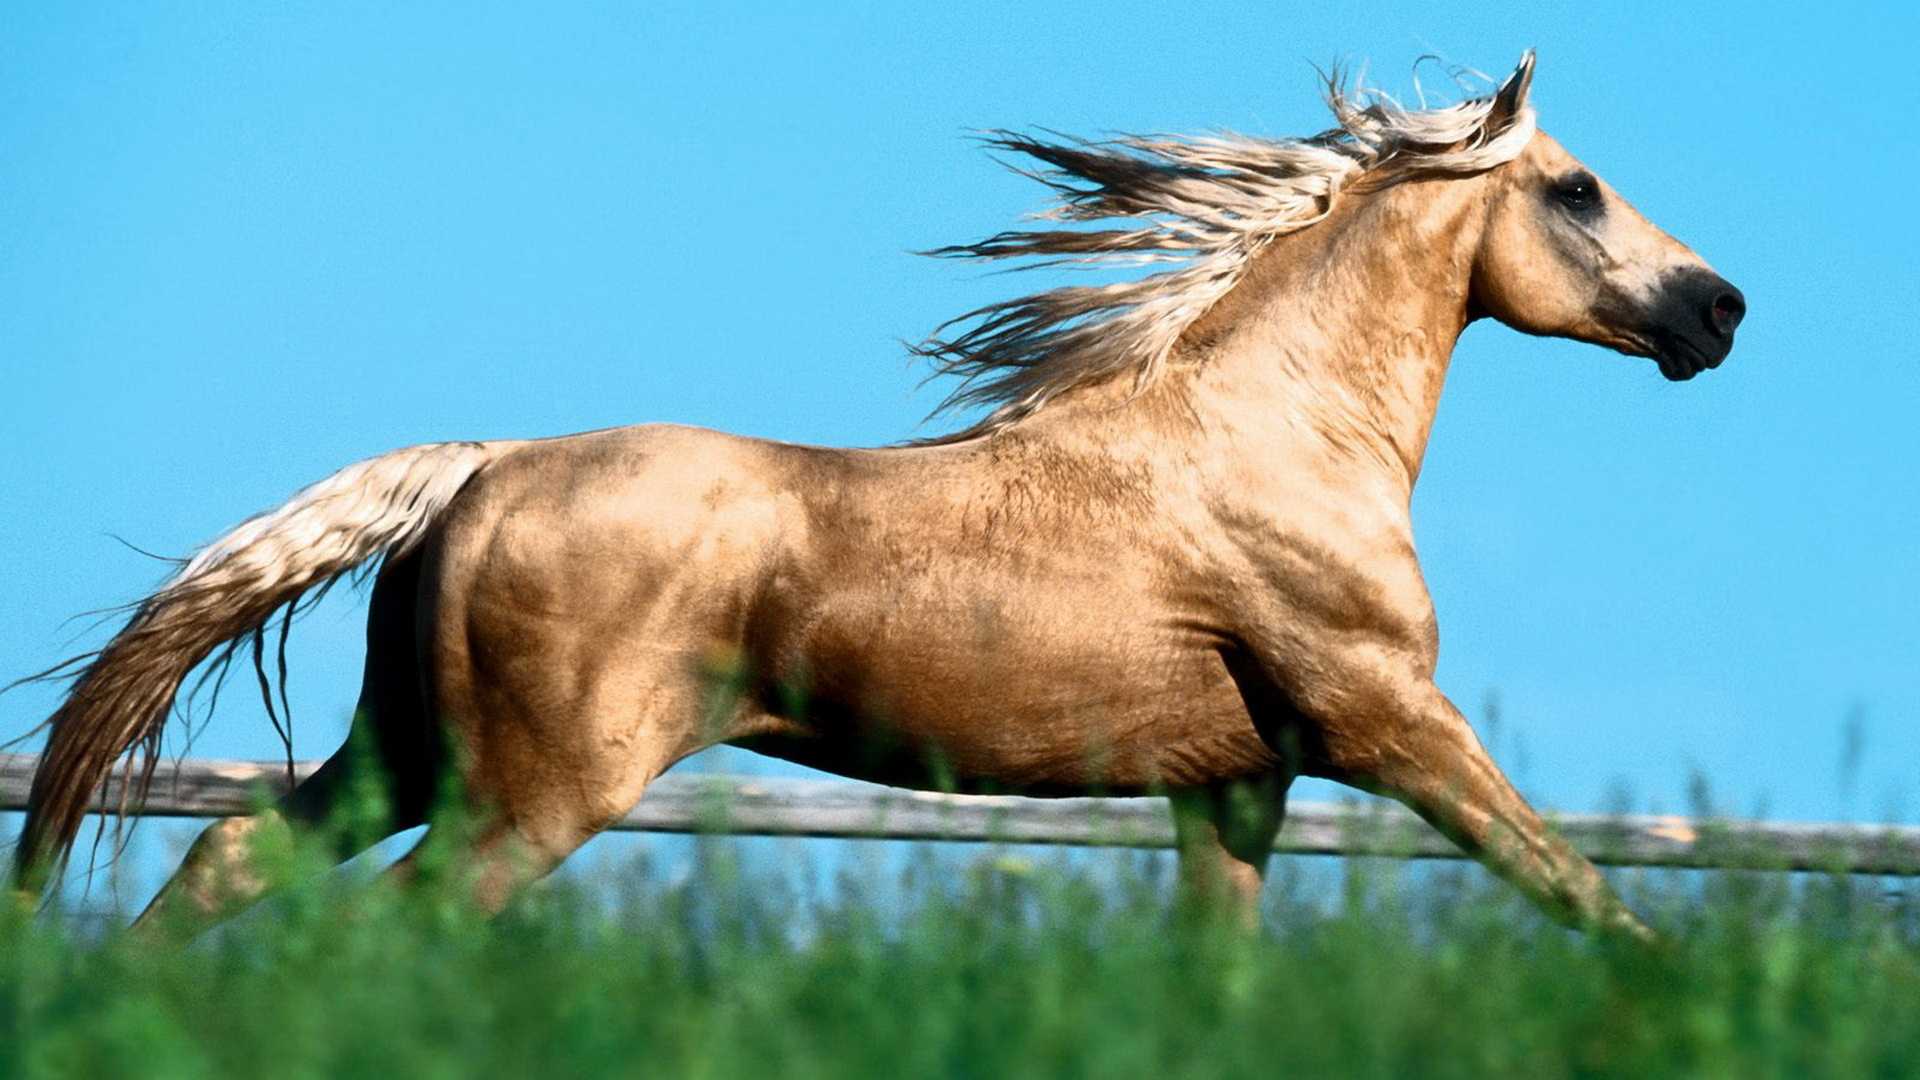 Horse  Arab Racer  Mane  Crest  Animals   Free HD  HD Wallpaper